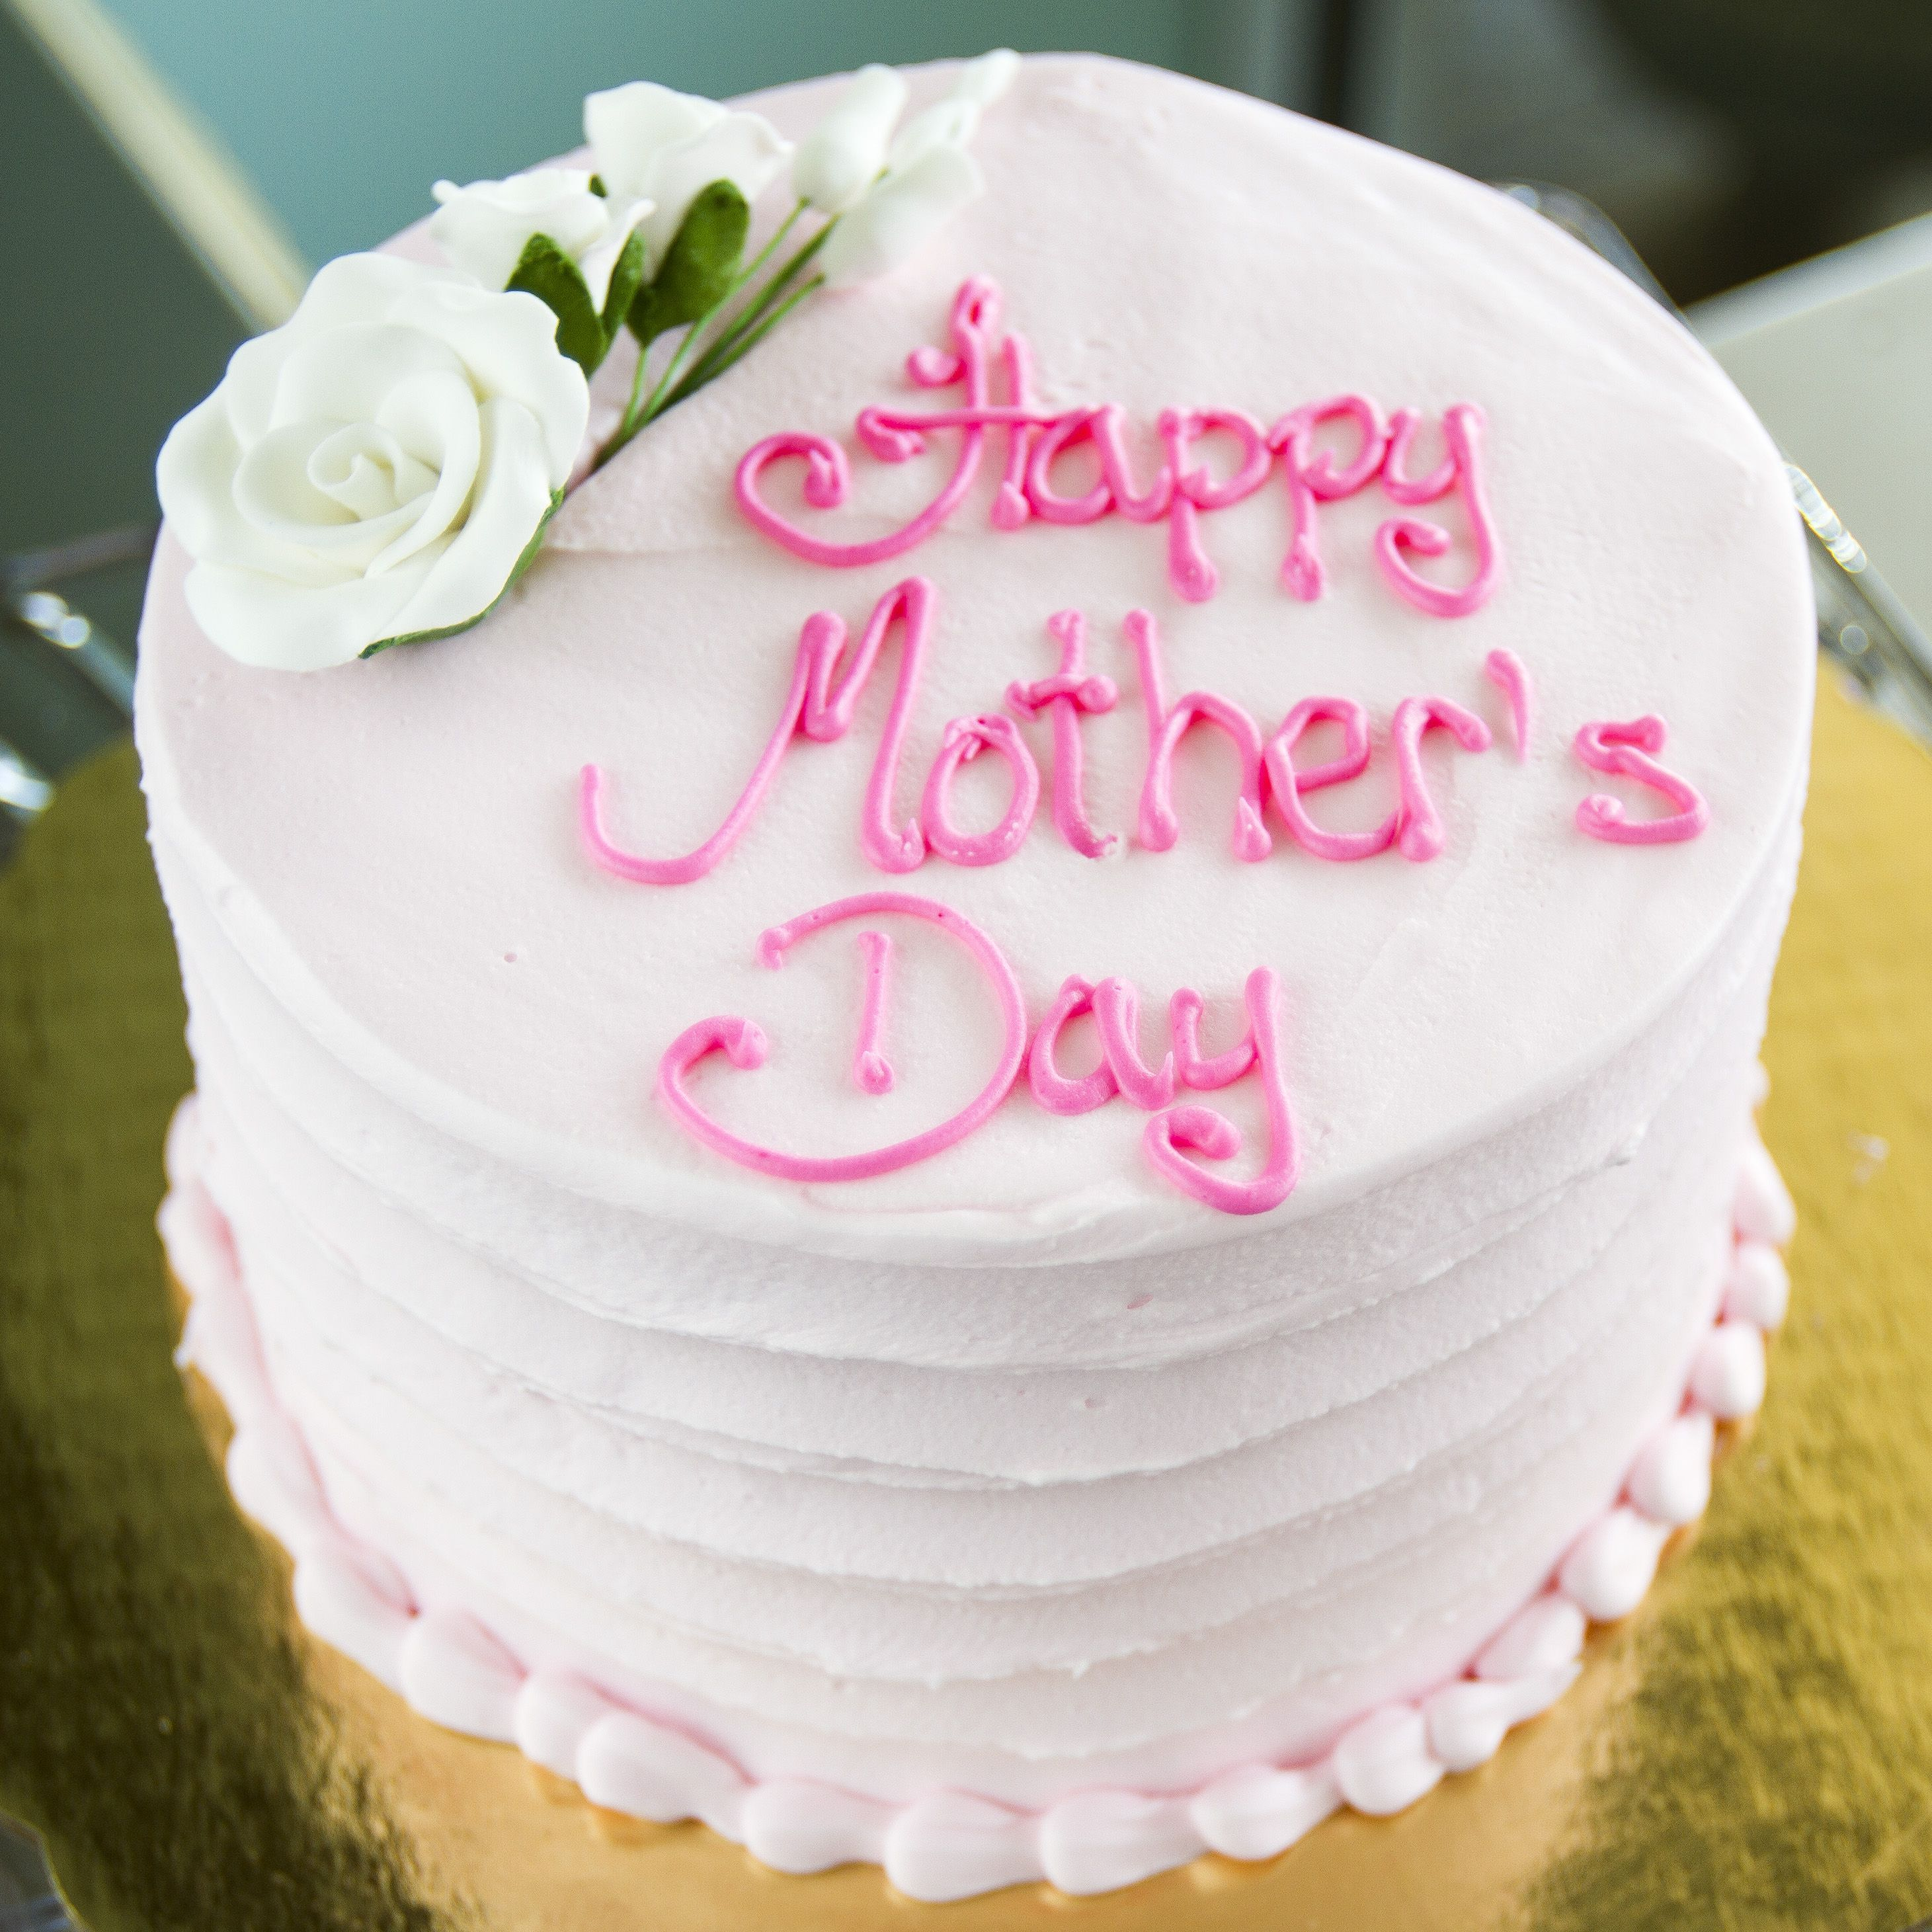 Easy Mother S Day Cake Ideas Mothers Day Cake Mothers Day Cakes Designs Cake Decorating